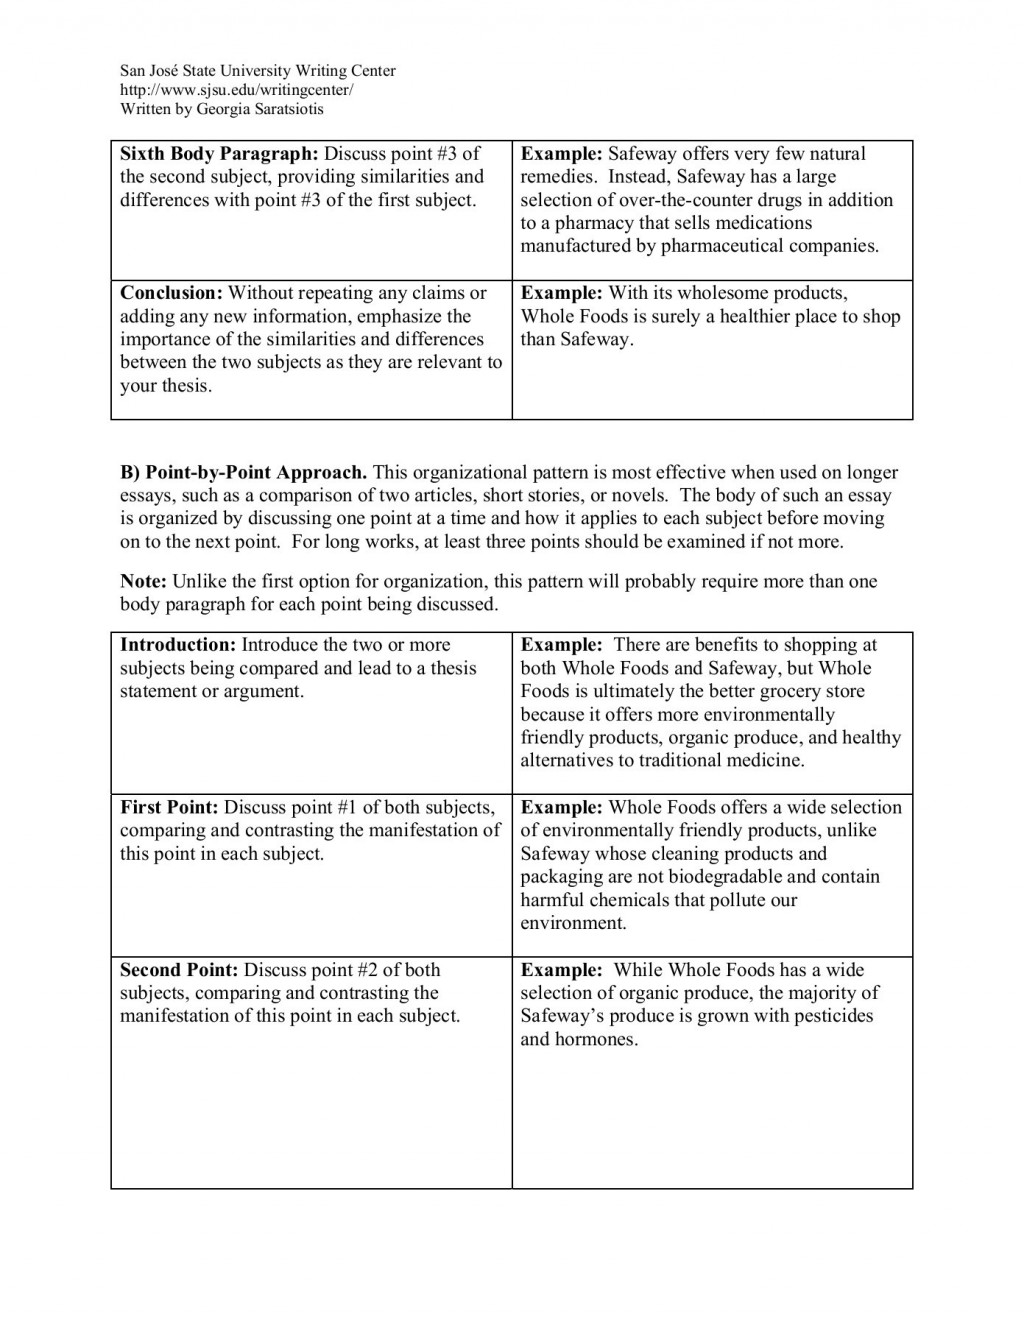 021 Comparing And Contrasting Essay Unique Comparison Contrast Sample Pdf Compare Structure University Topics On Health Large